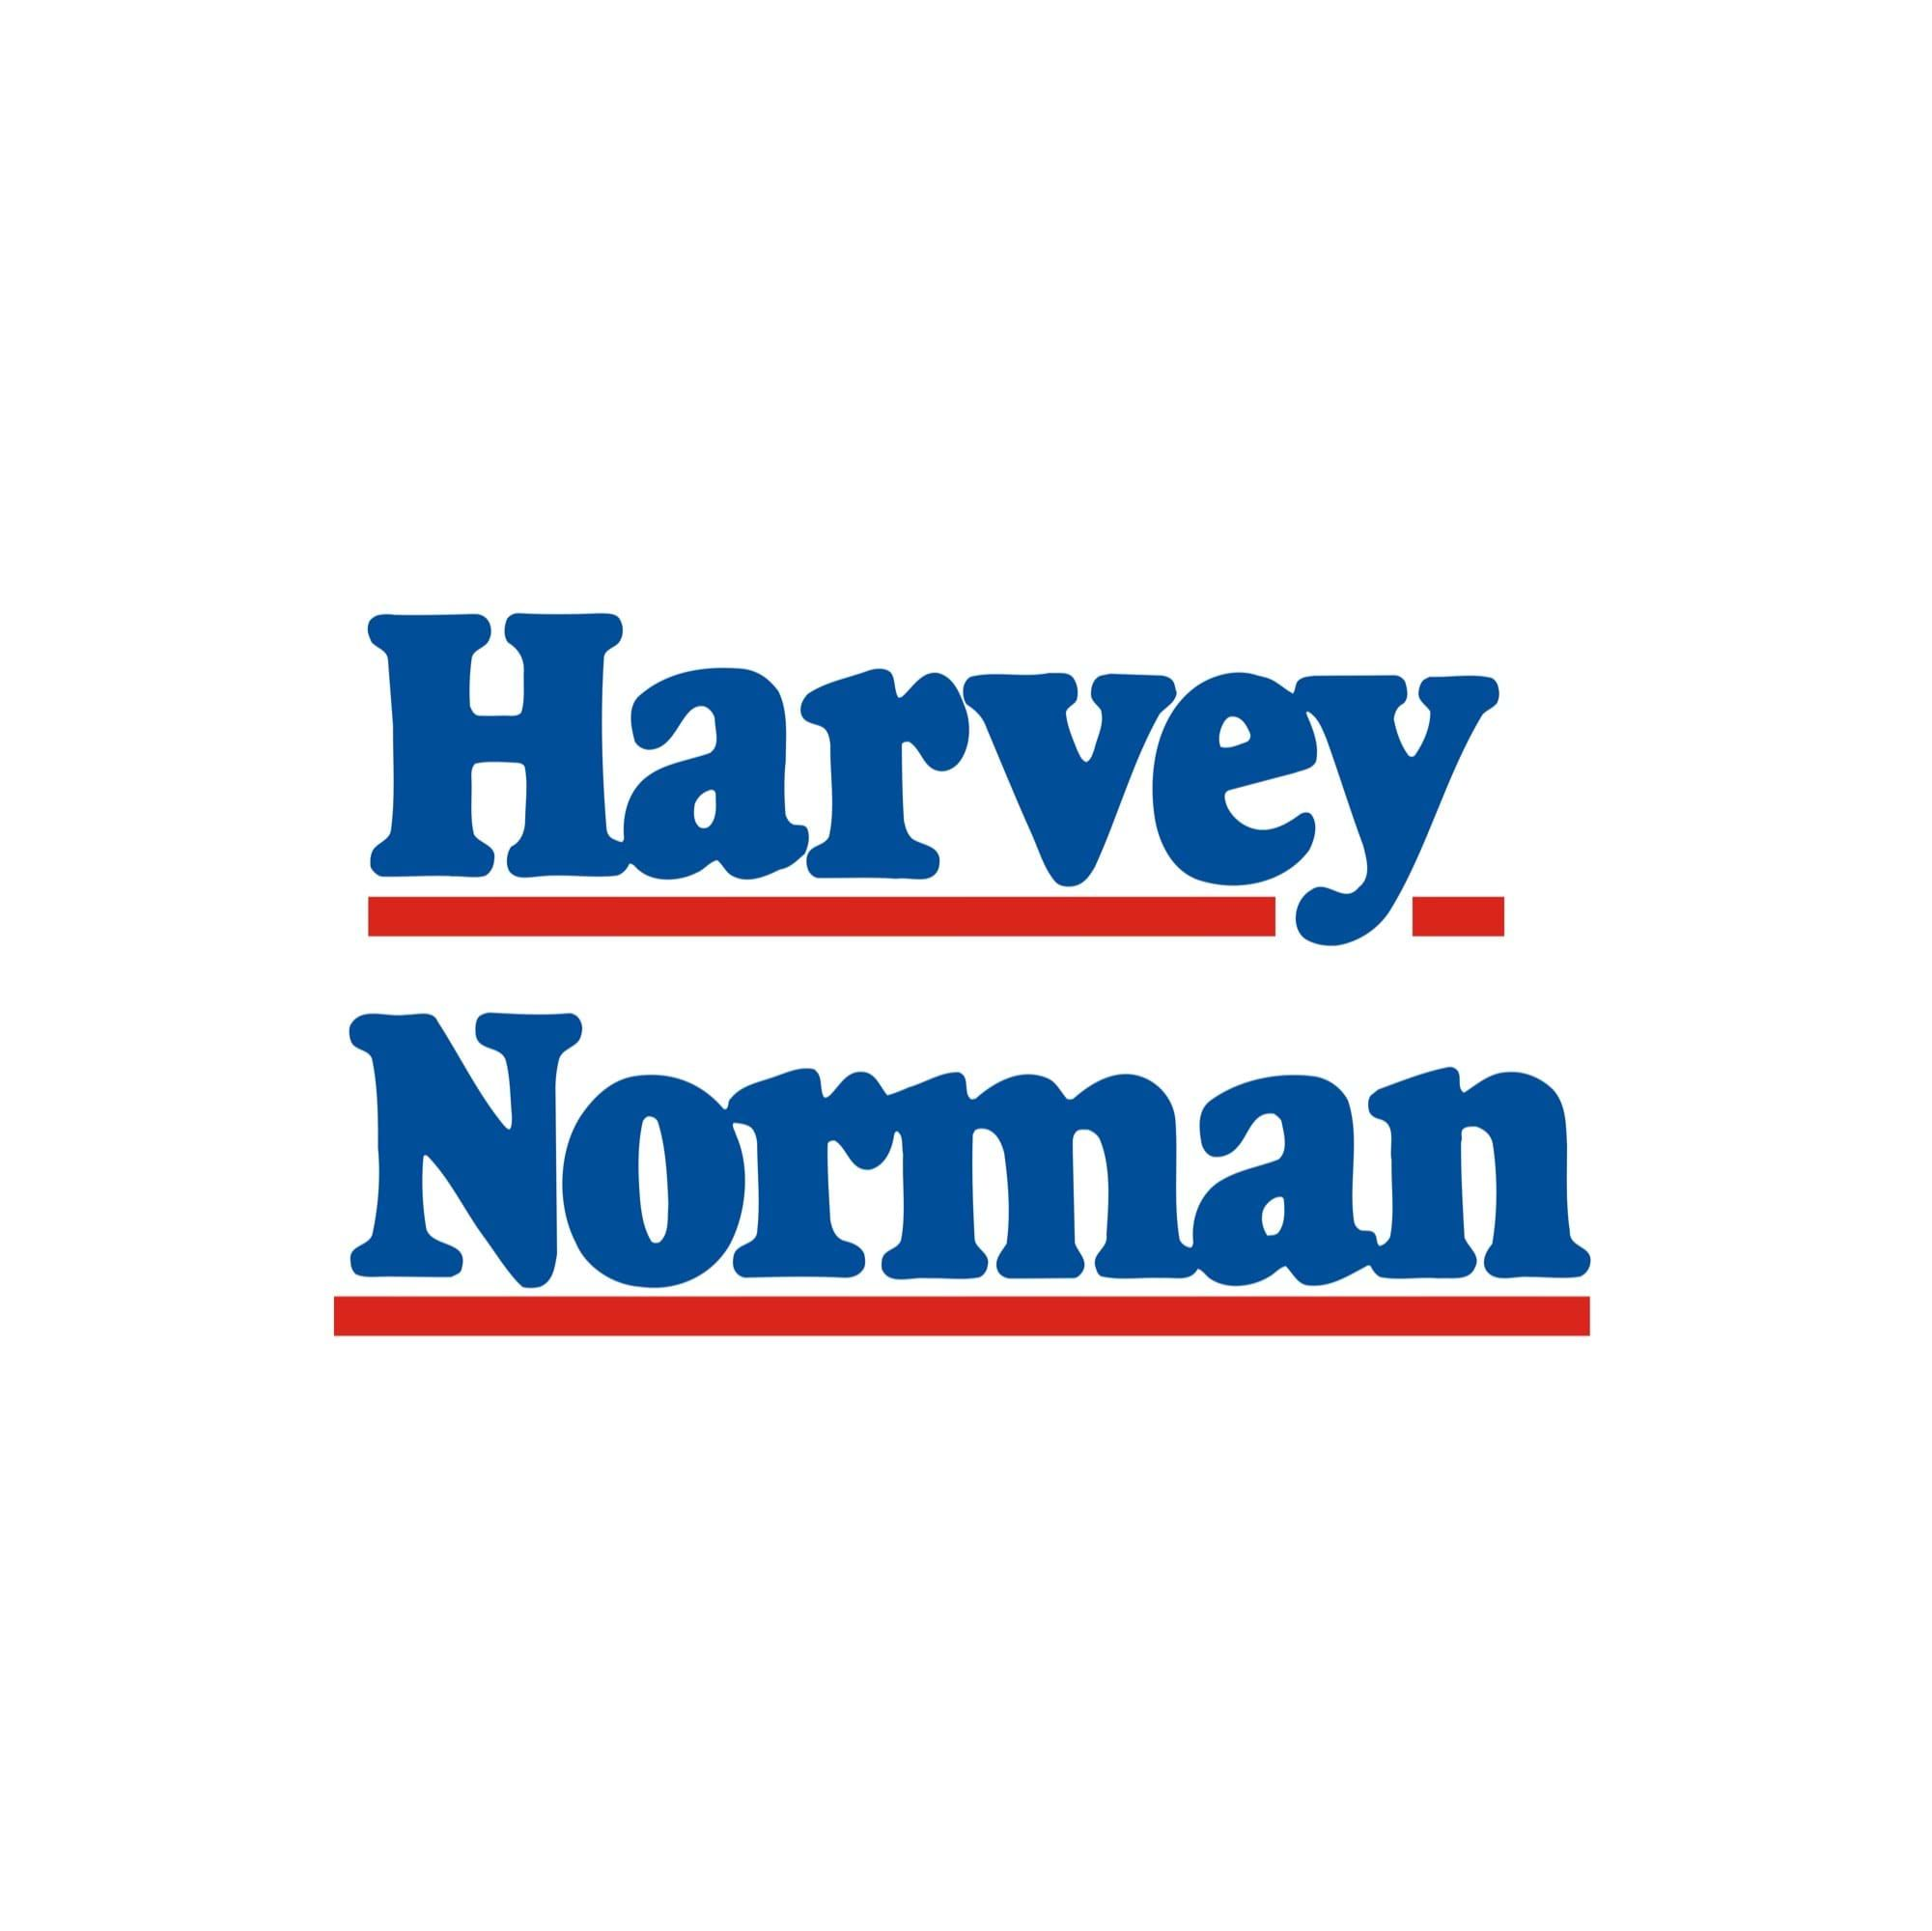 In association with Harvey Norman